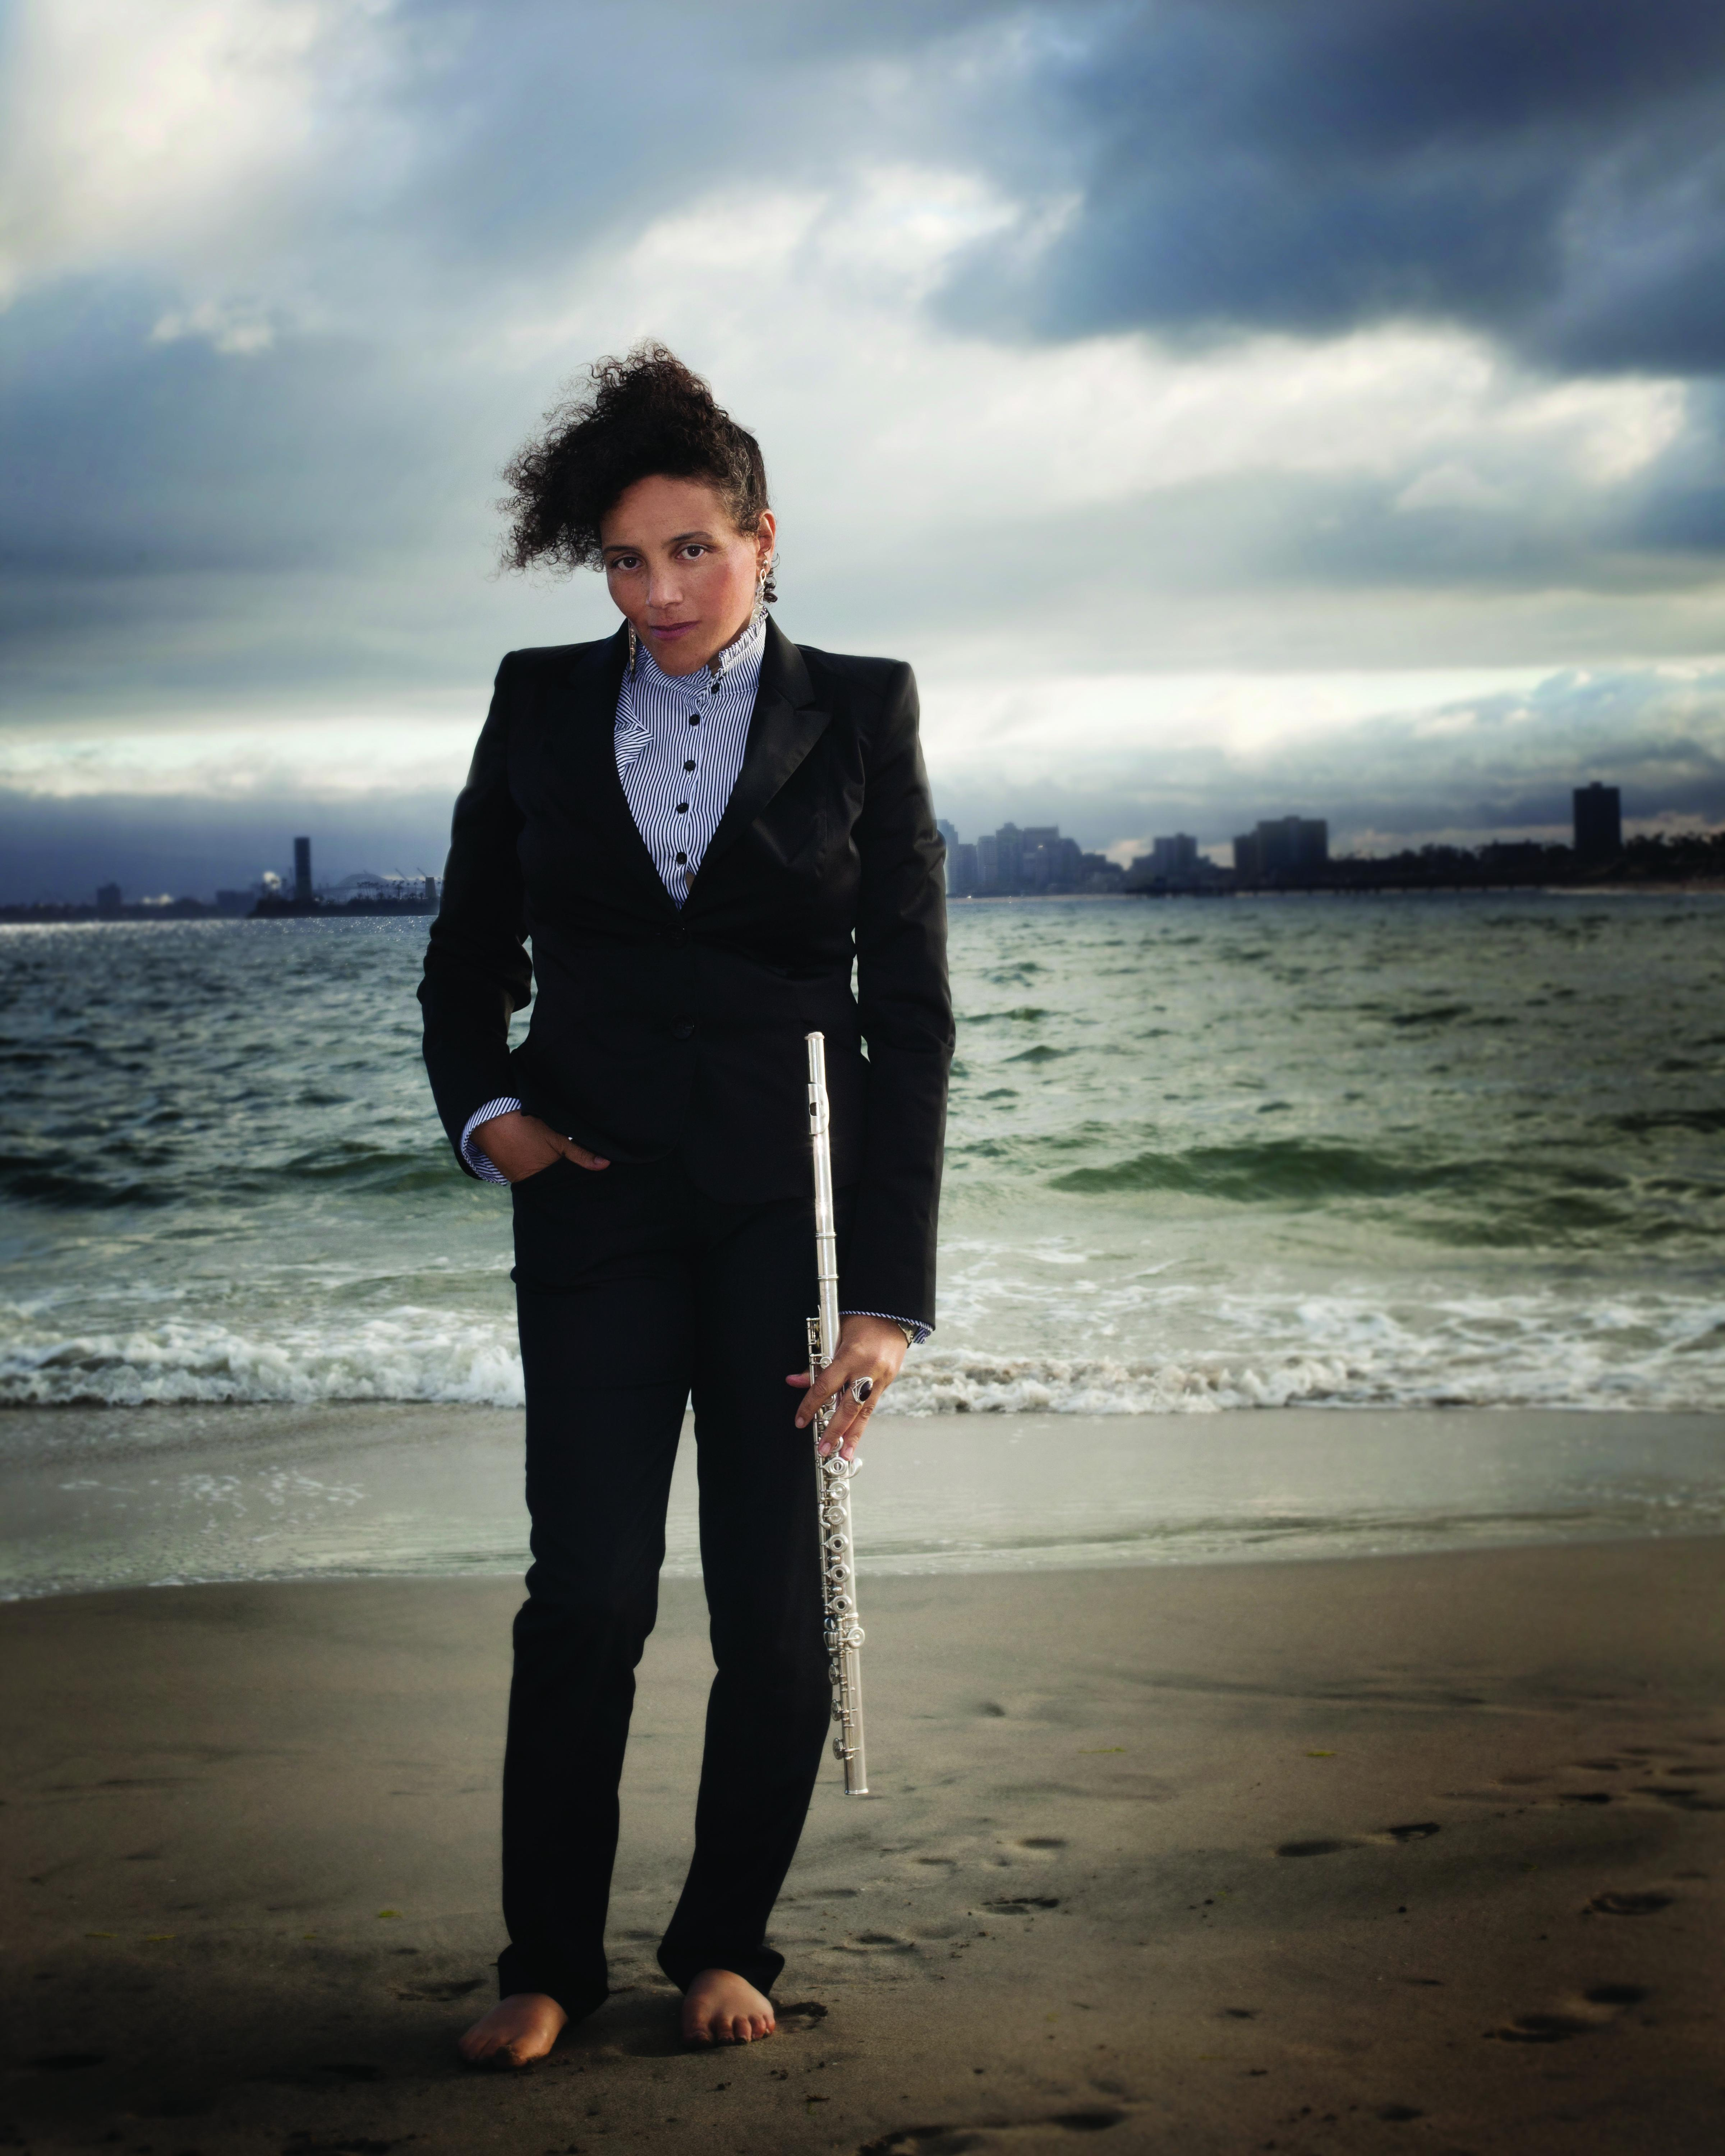 A person in a black suit stands barefoot on a beach while holding a flute.